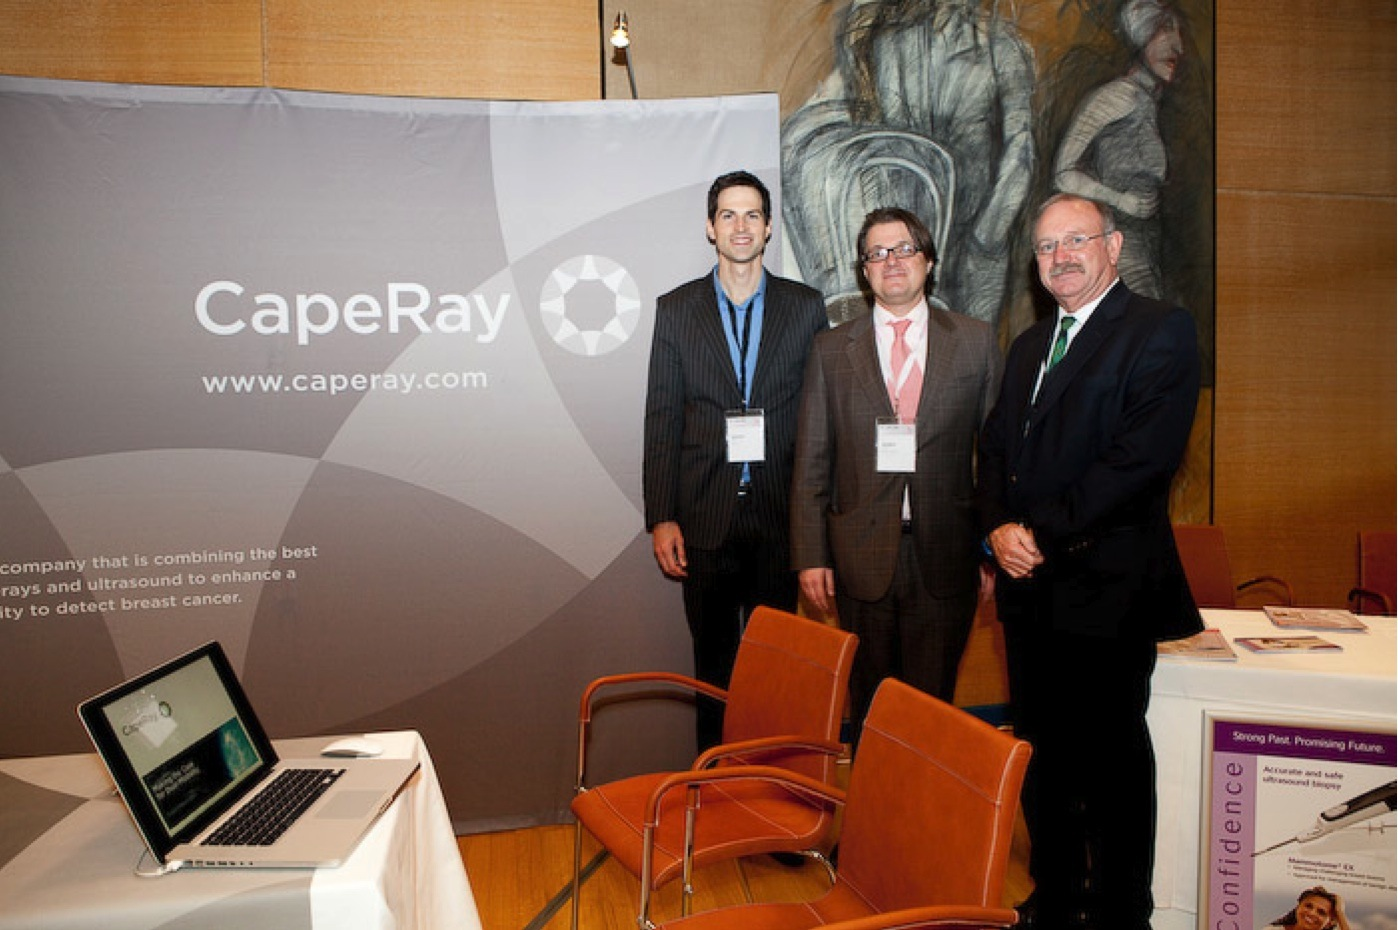 Roland Baasch (left) and Kit Vaughan (right) with Prof. Thomas Helbich (centre), president of EUSOBI, at the CapeRay exhibit.